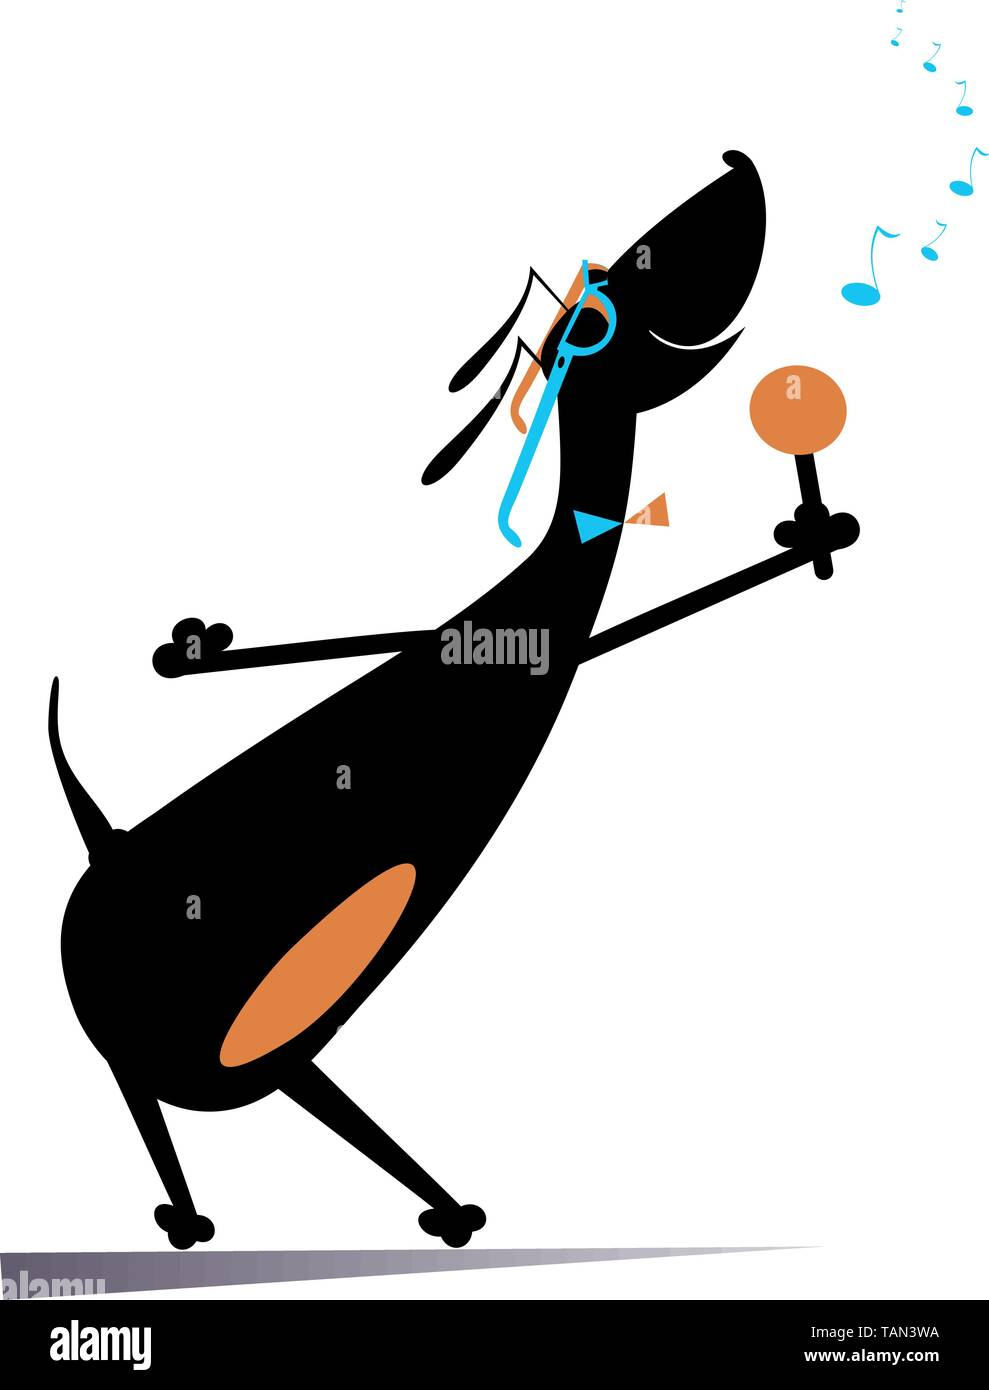 Romantic singer dog isolated illustration. Dachshund with a microphone sings a song with inspiration illustration - Stock Vector